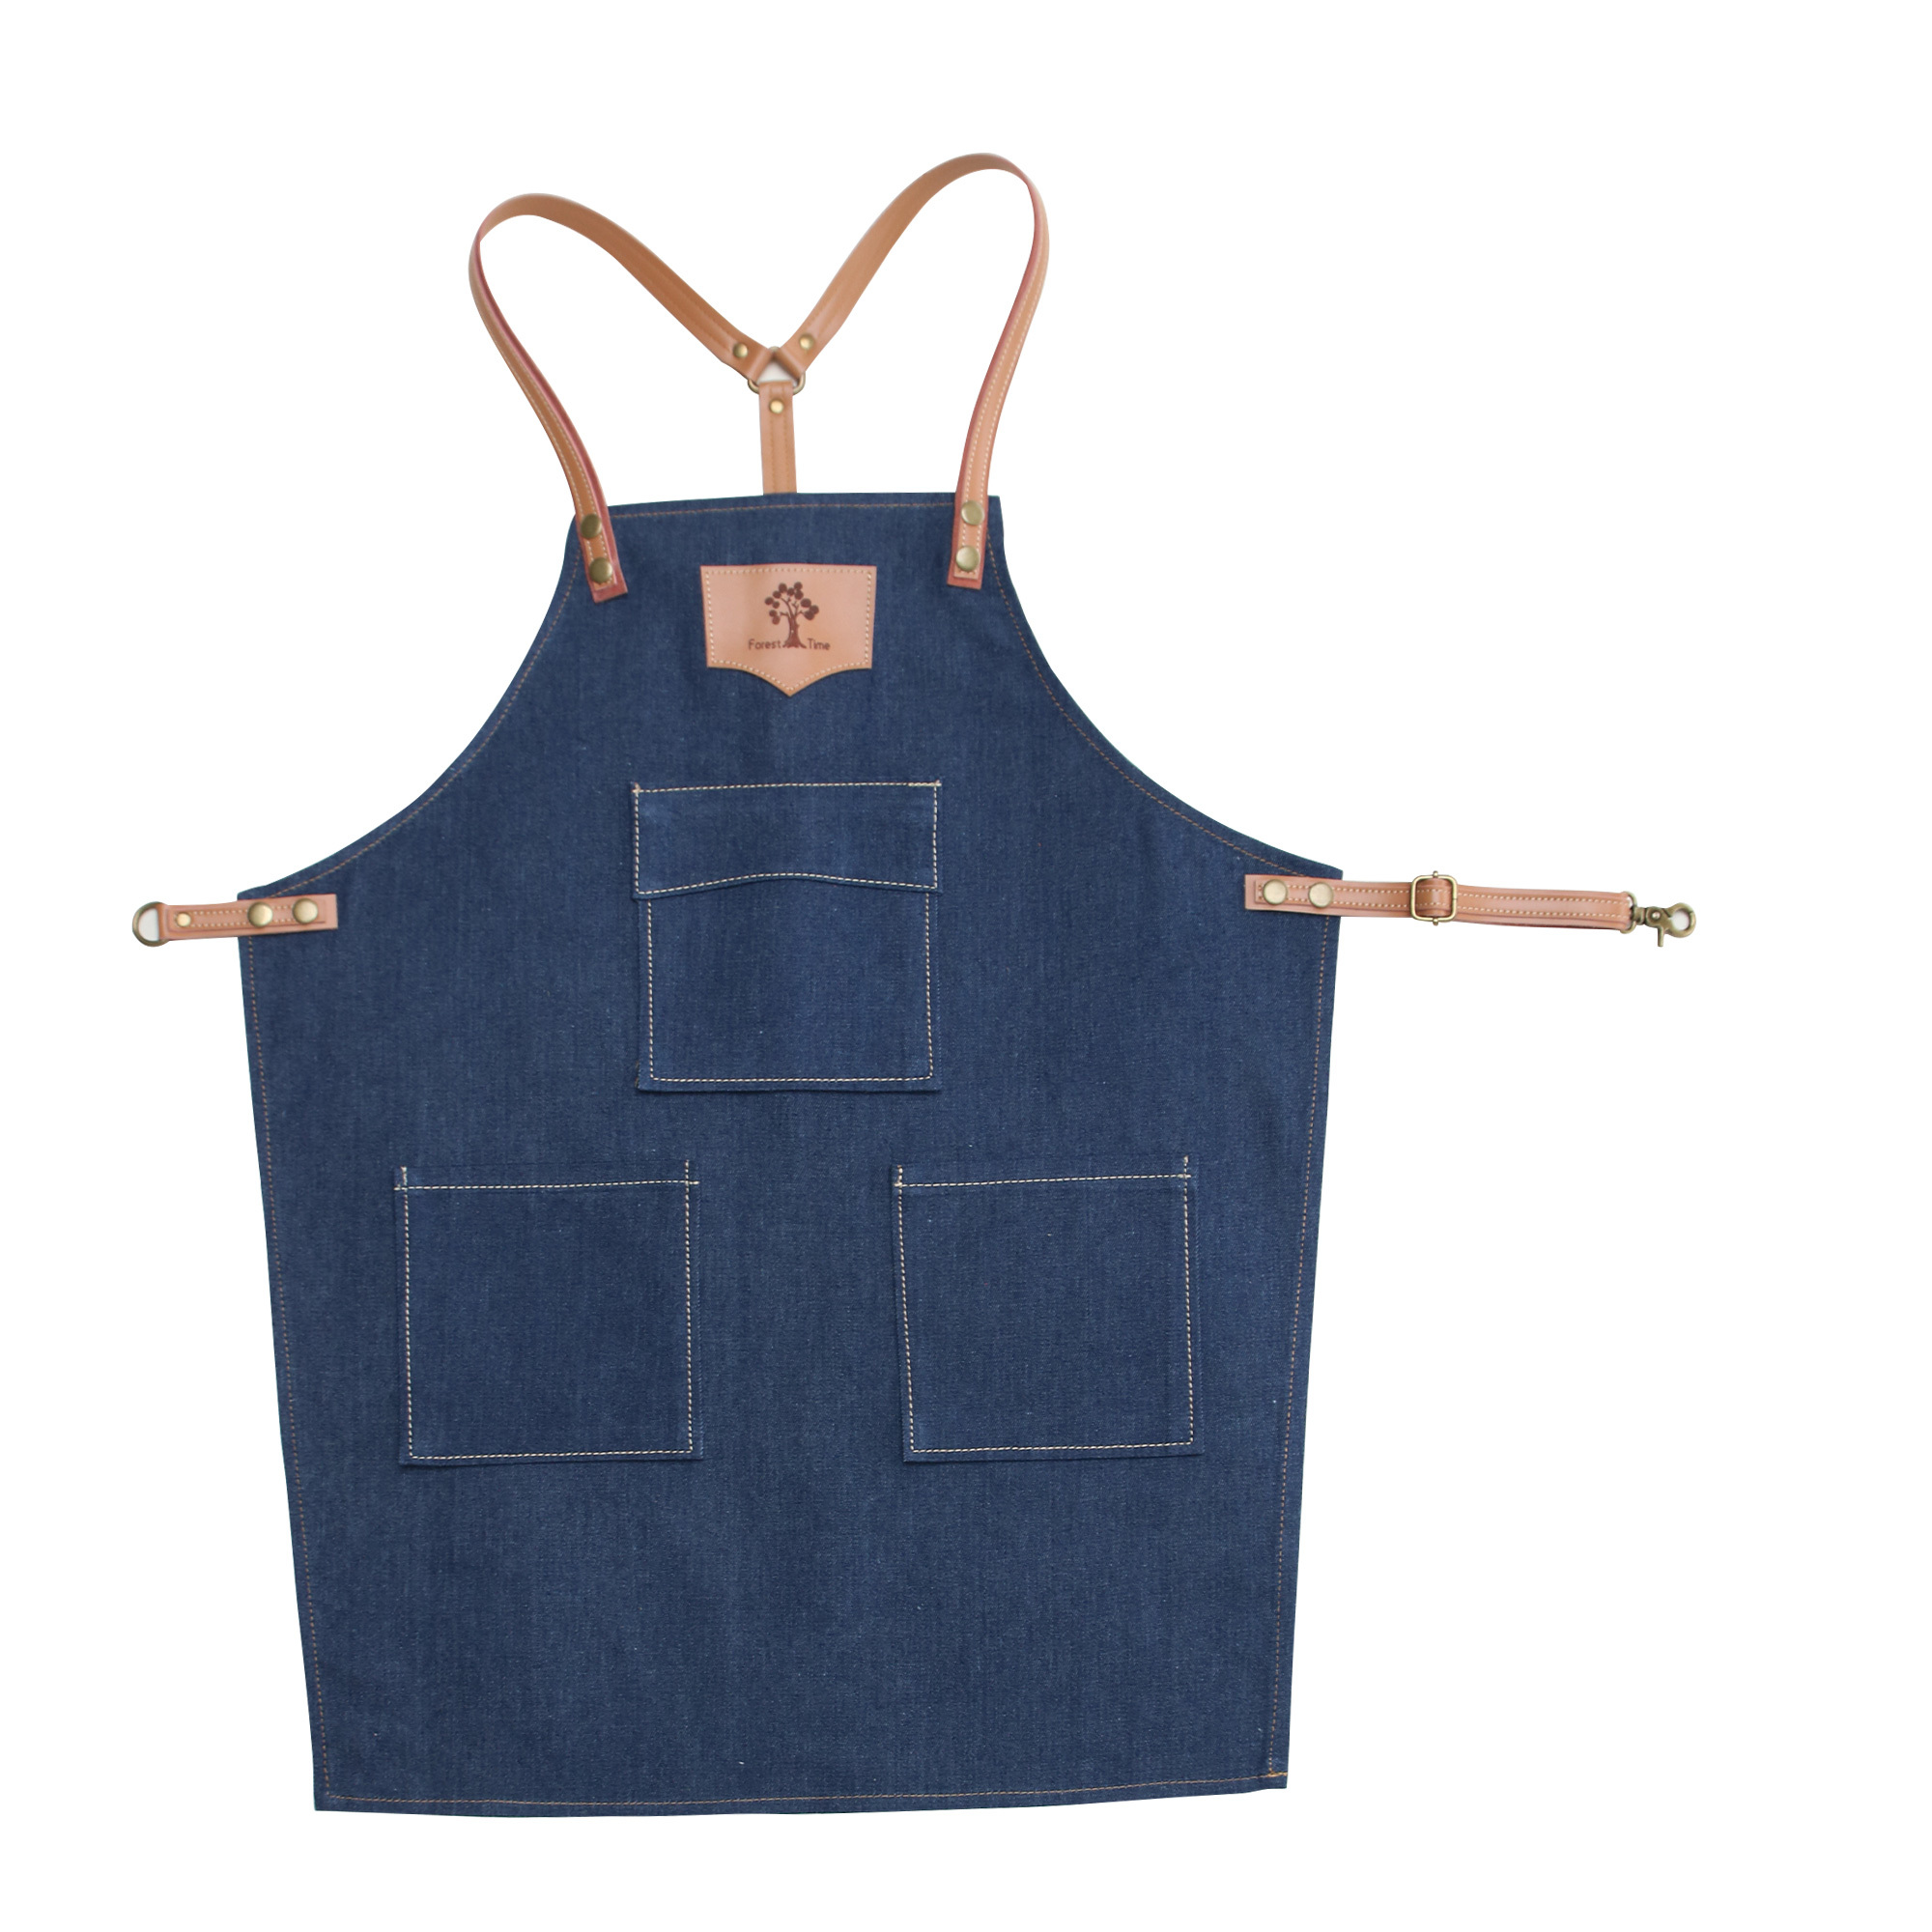 New Cowboy Bibs Aprons for Women Leather BBQ Chef Home Kitchen Dress Barber Hairdres Cafe Cook Waiter Custom logo Pinafore Gift|Aprons| |  - title=